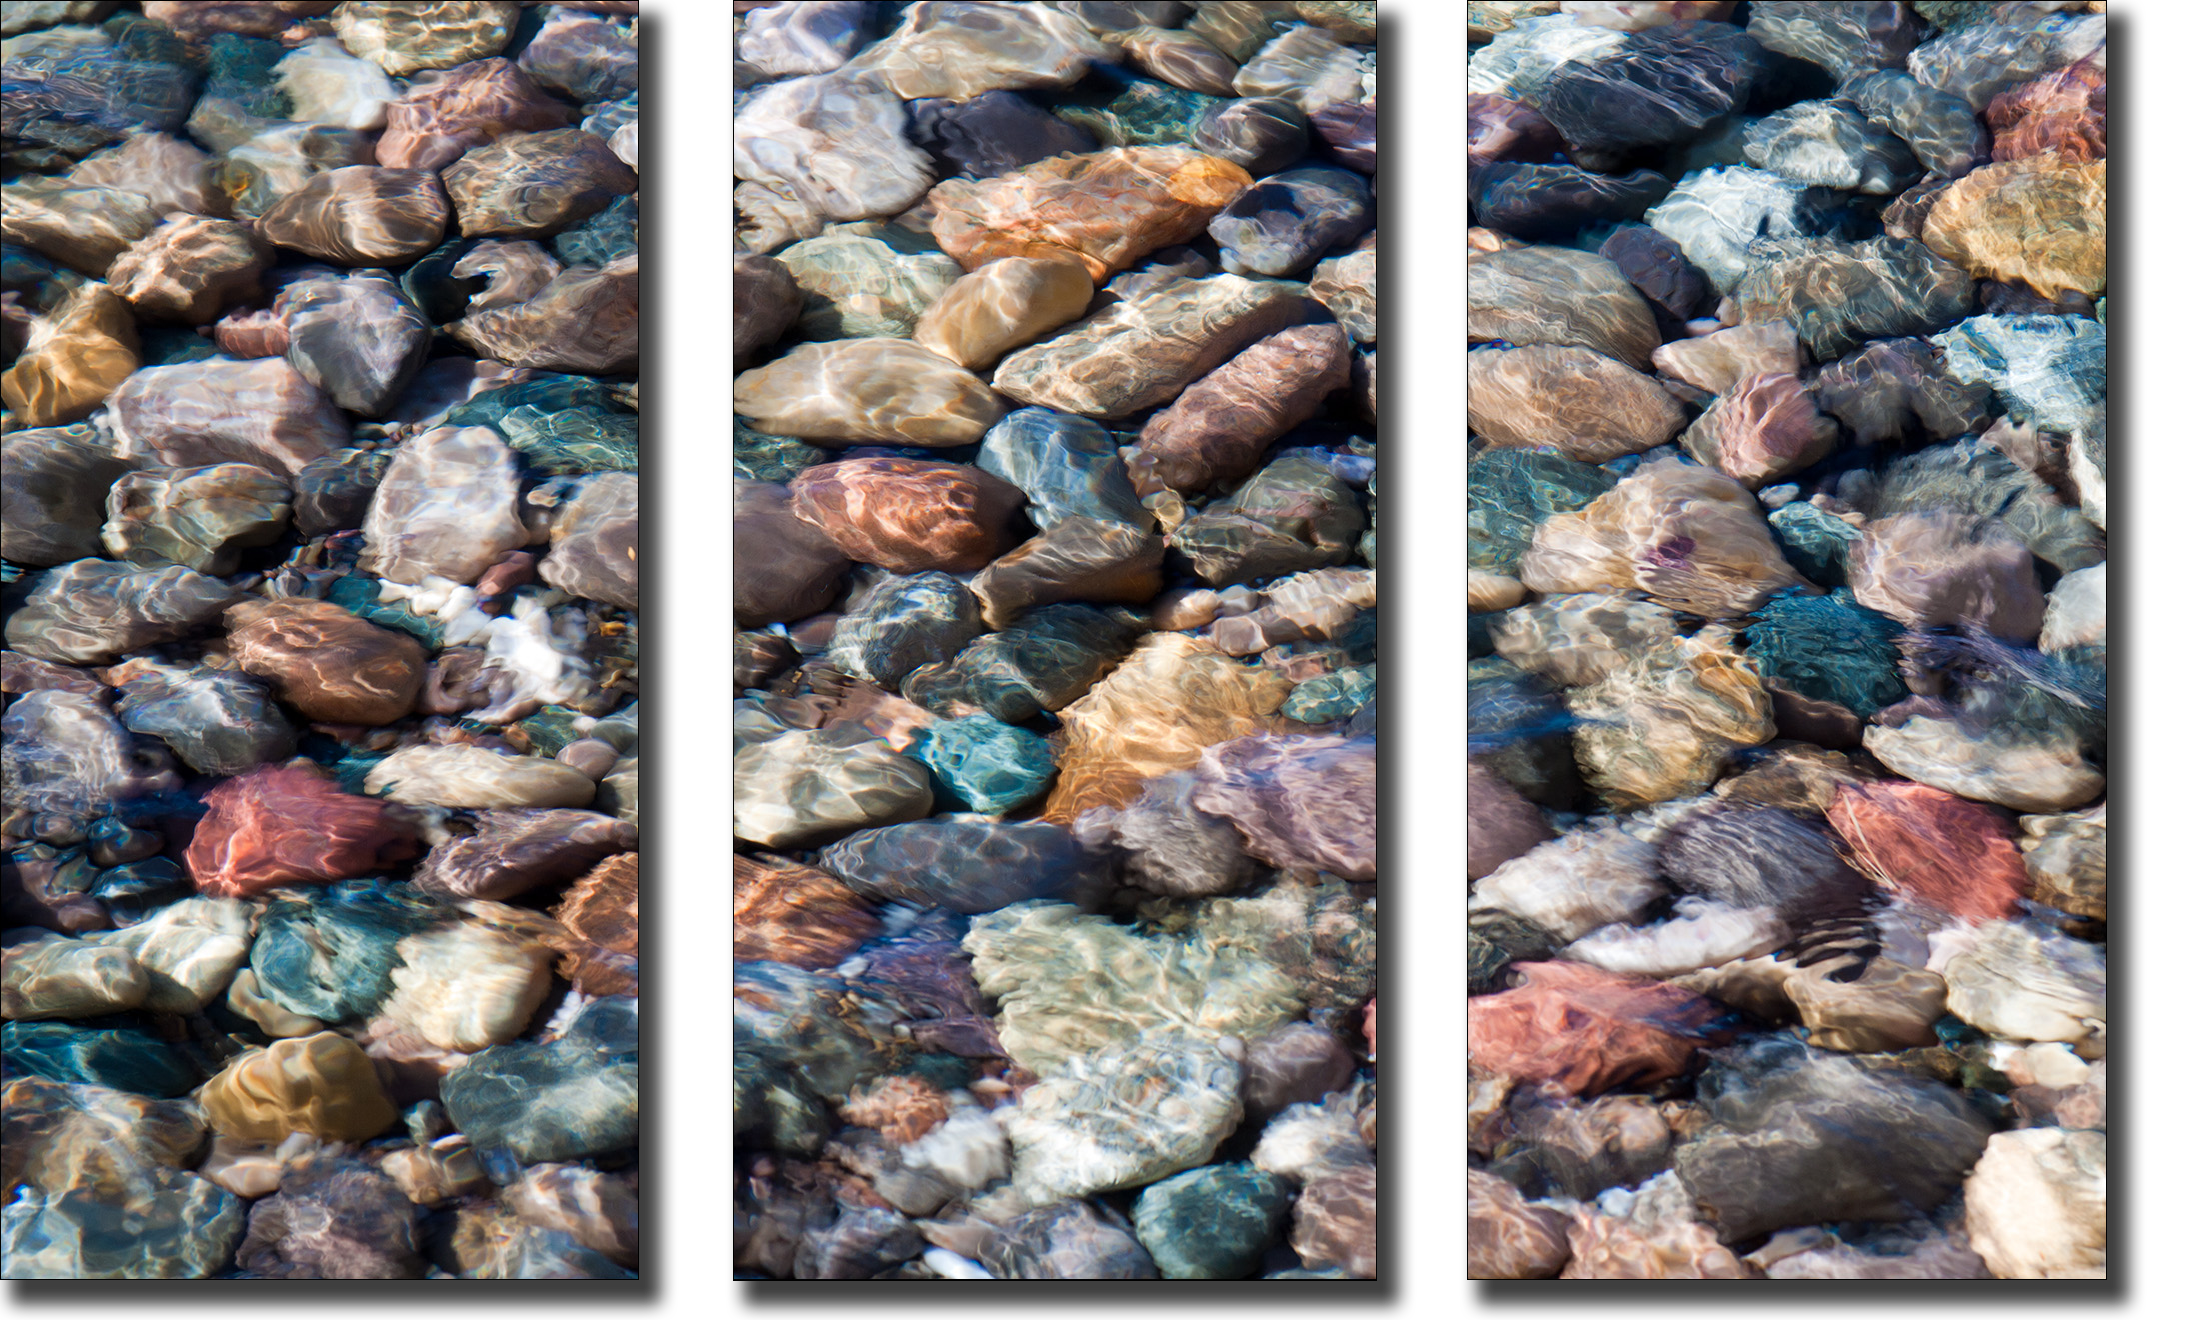 Stones in shallow water r00qb4